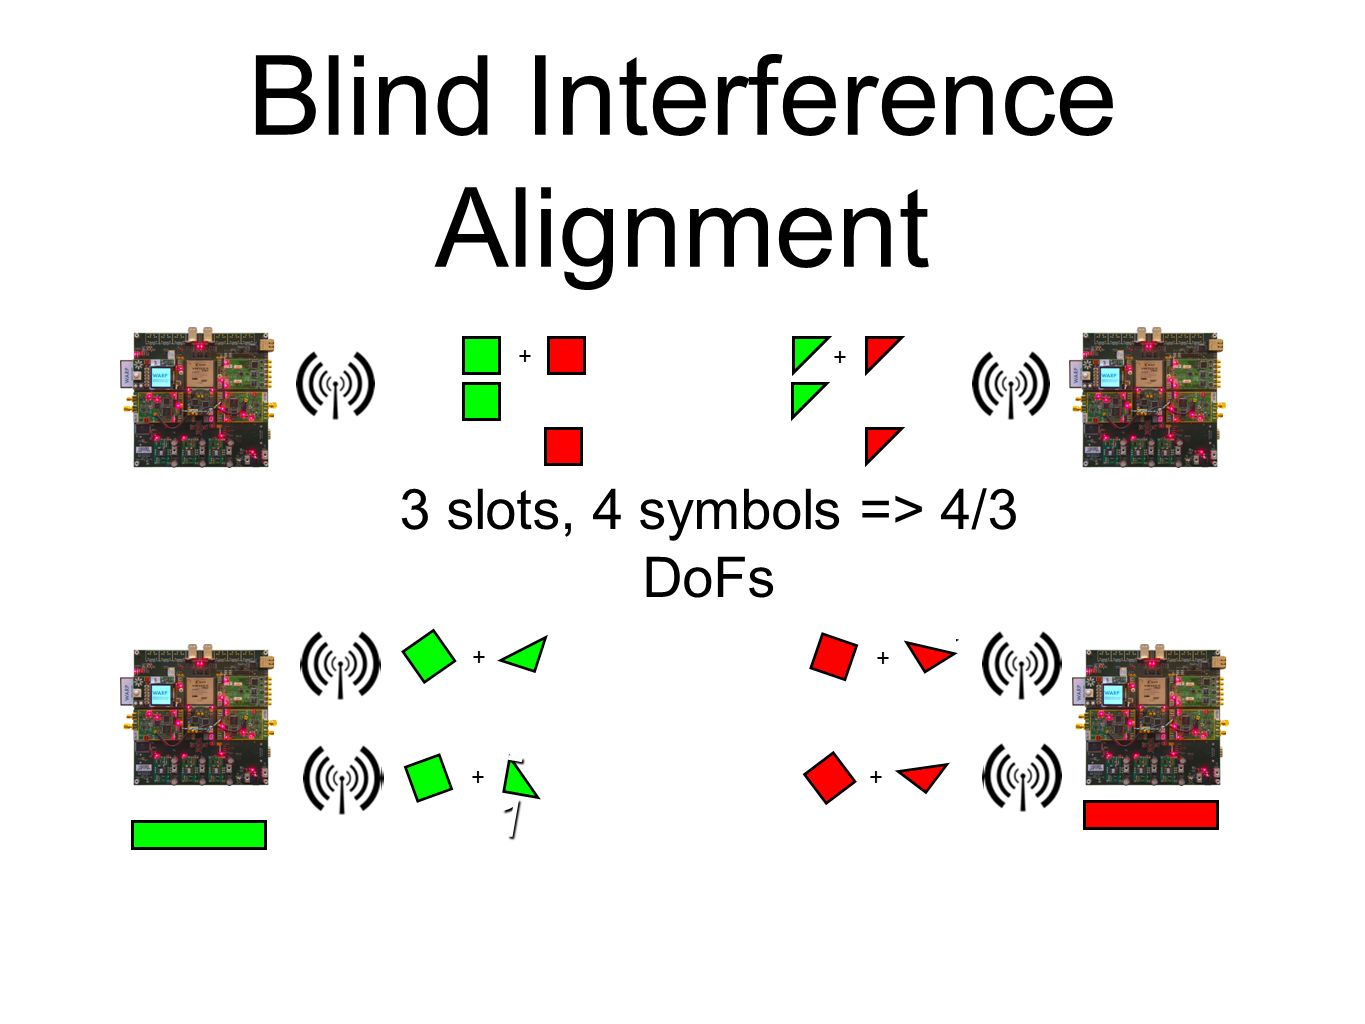 Blind Interference Alignment 3 slots, 4 symbols => 4/3 DoFs + + 72727272 ++++++ -1-1-1-1 + + + + + +